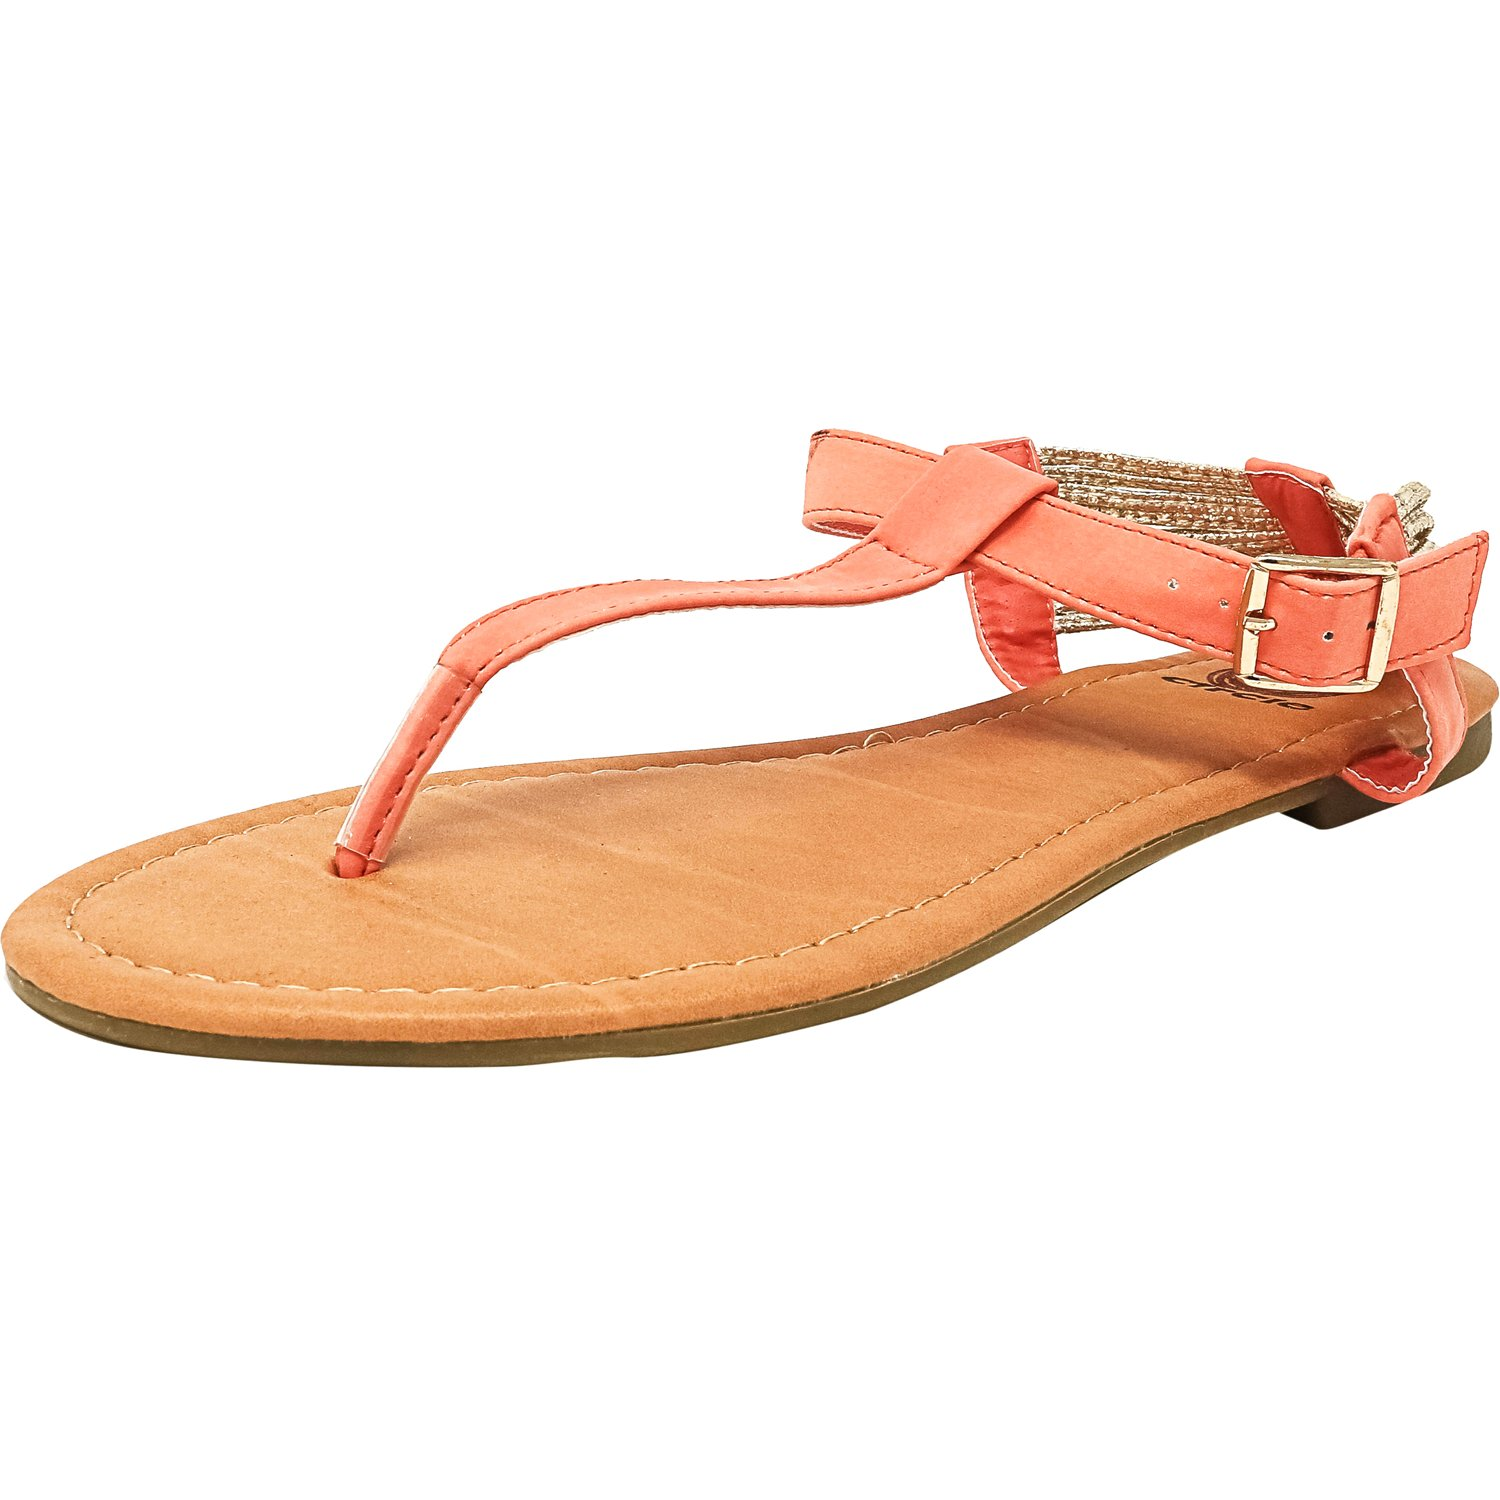 Red Circle Women's Flyer Coral Leather Sandal - 10M